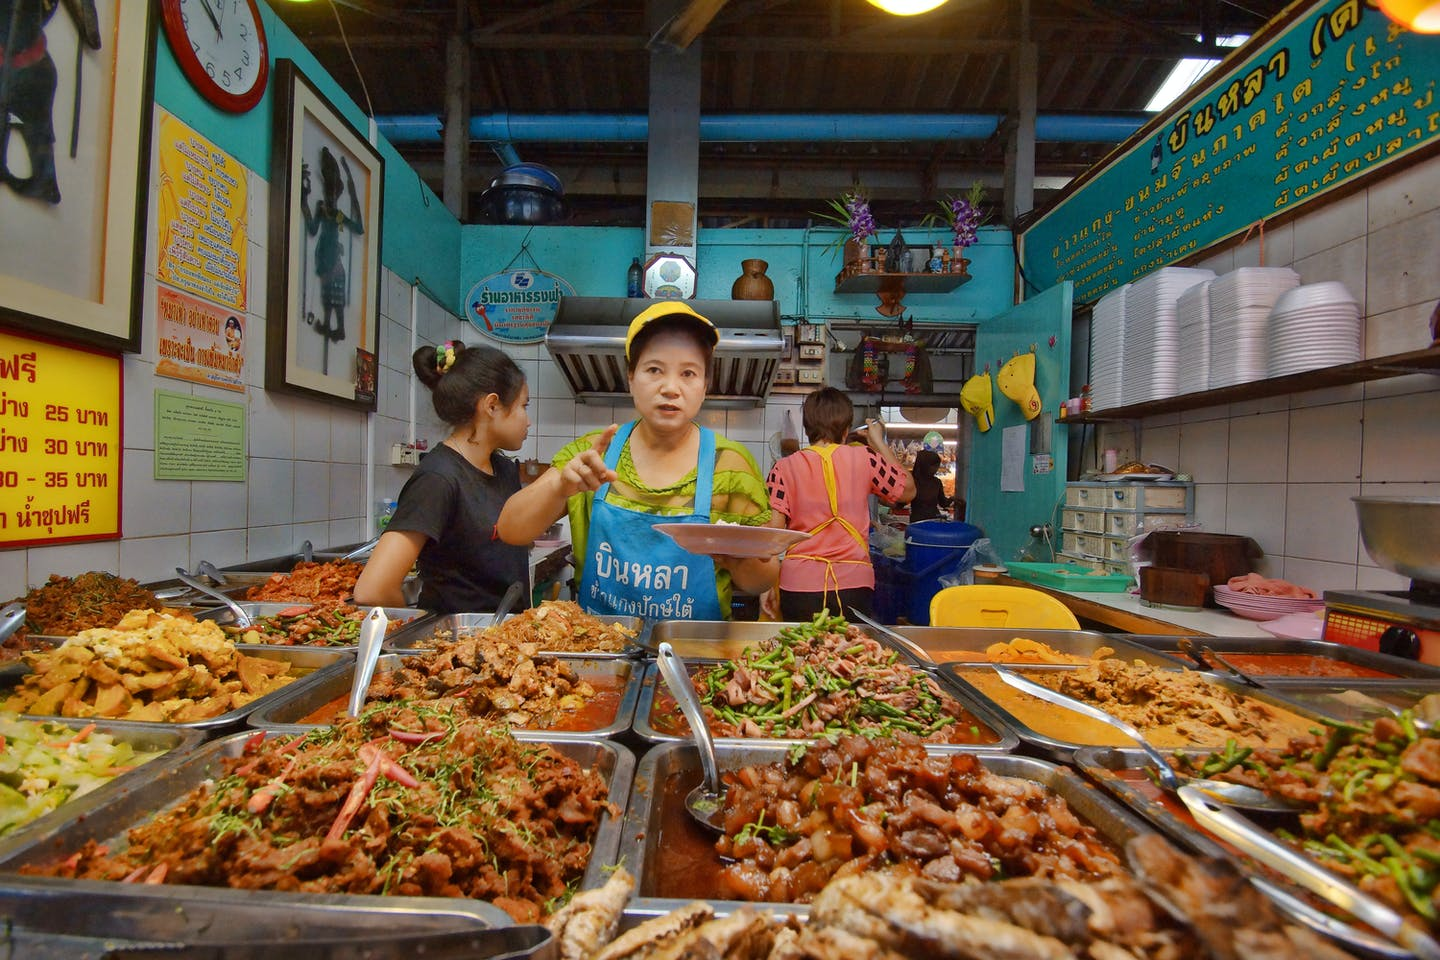 Food market in Bangkok